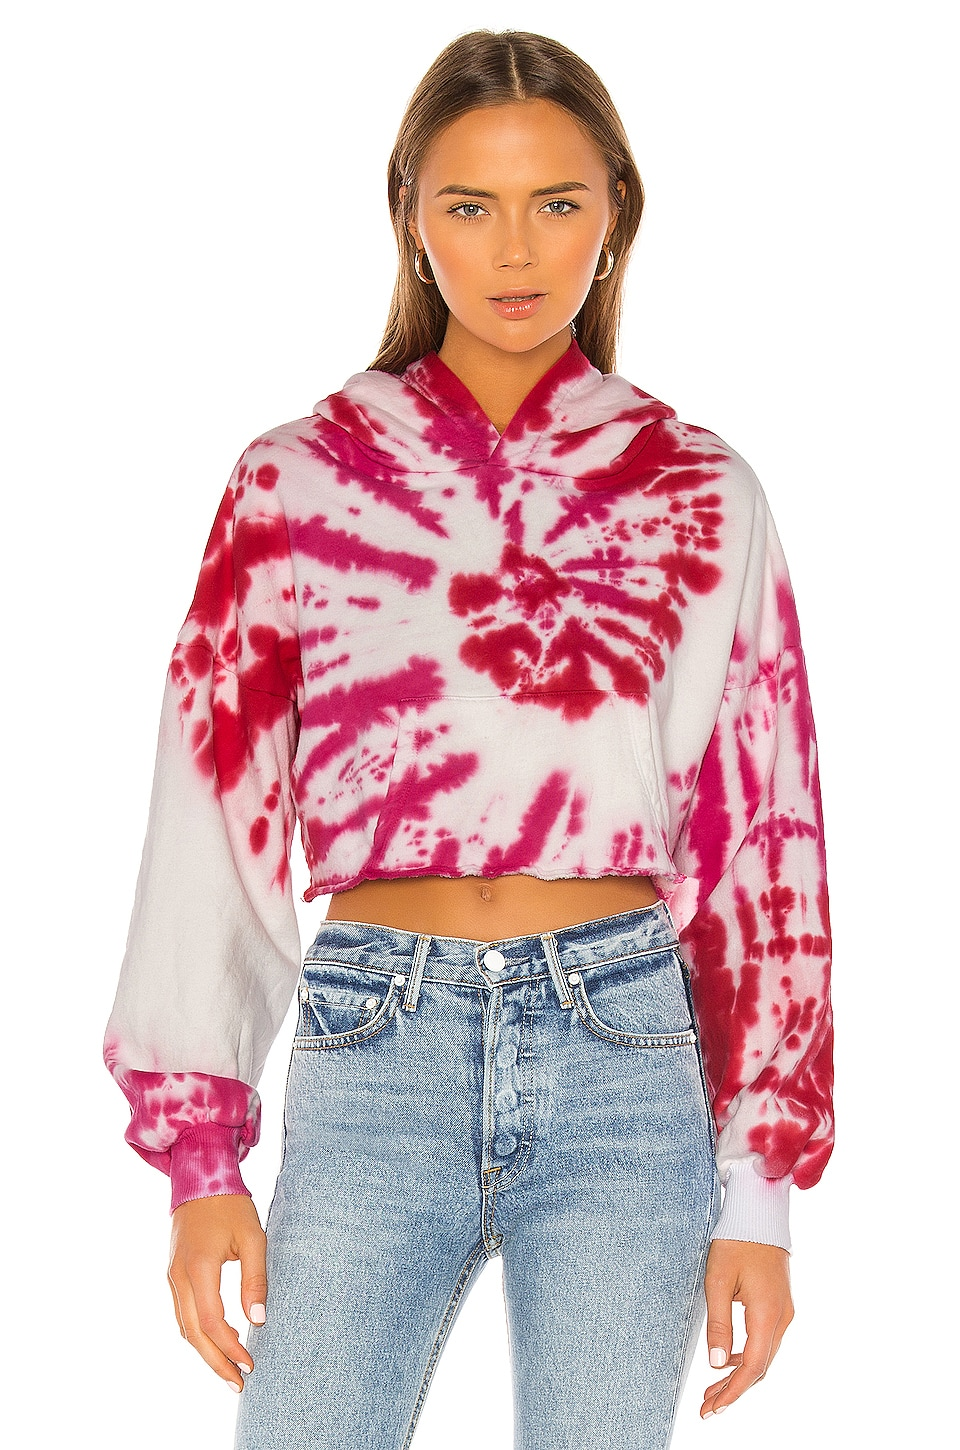 Lovers + Friends Tie Dye Crop Hoodie in Pink Swirl